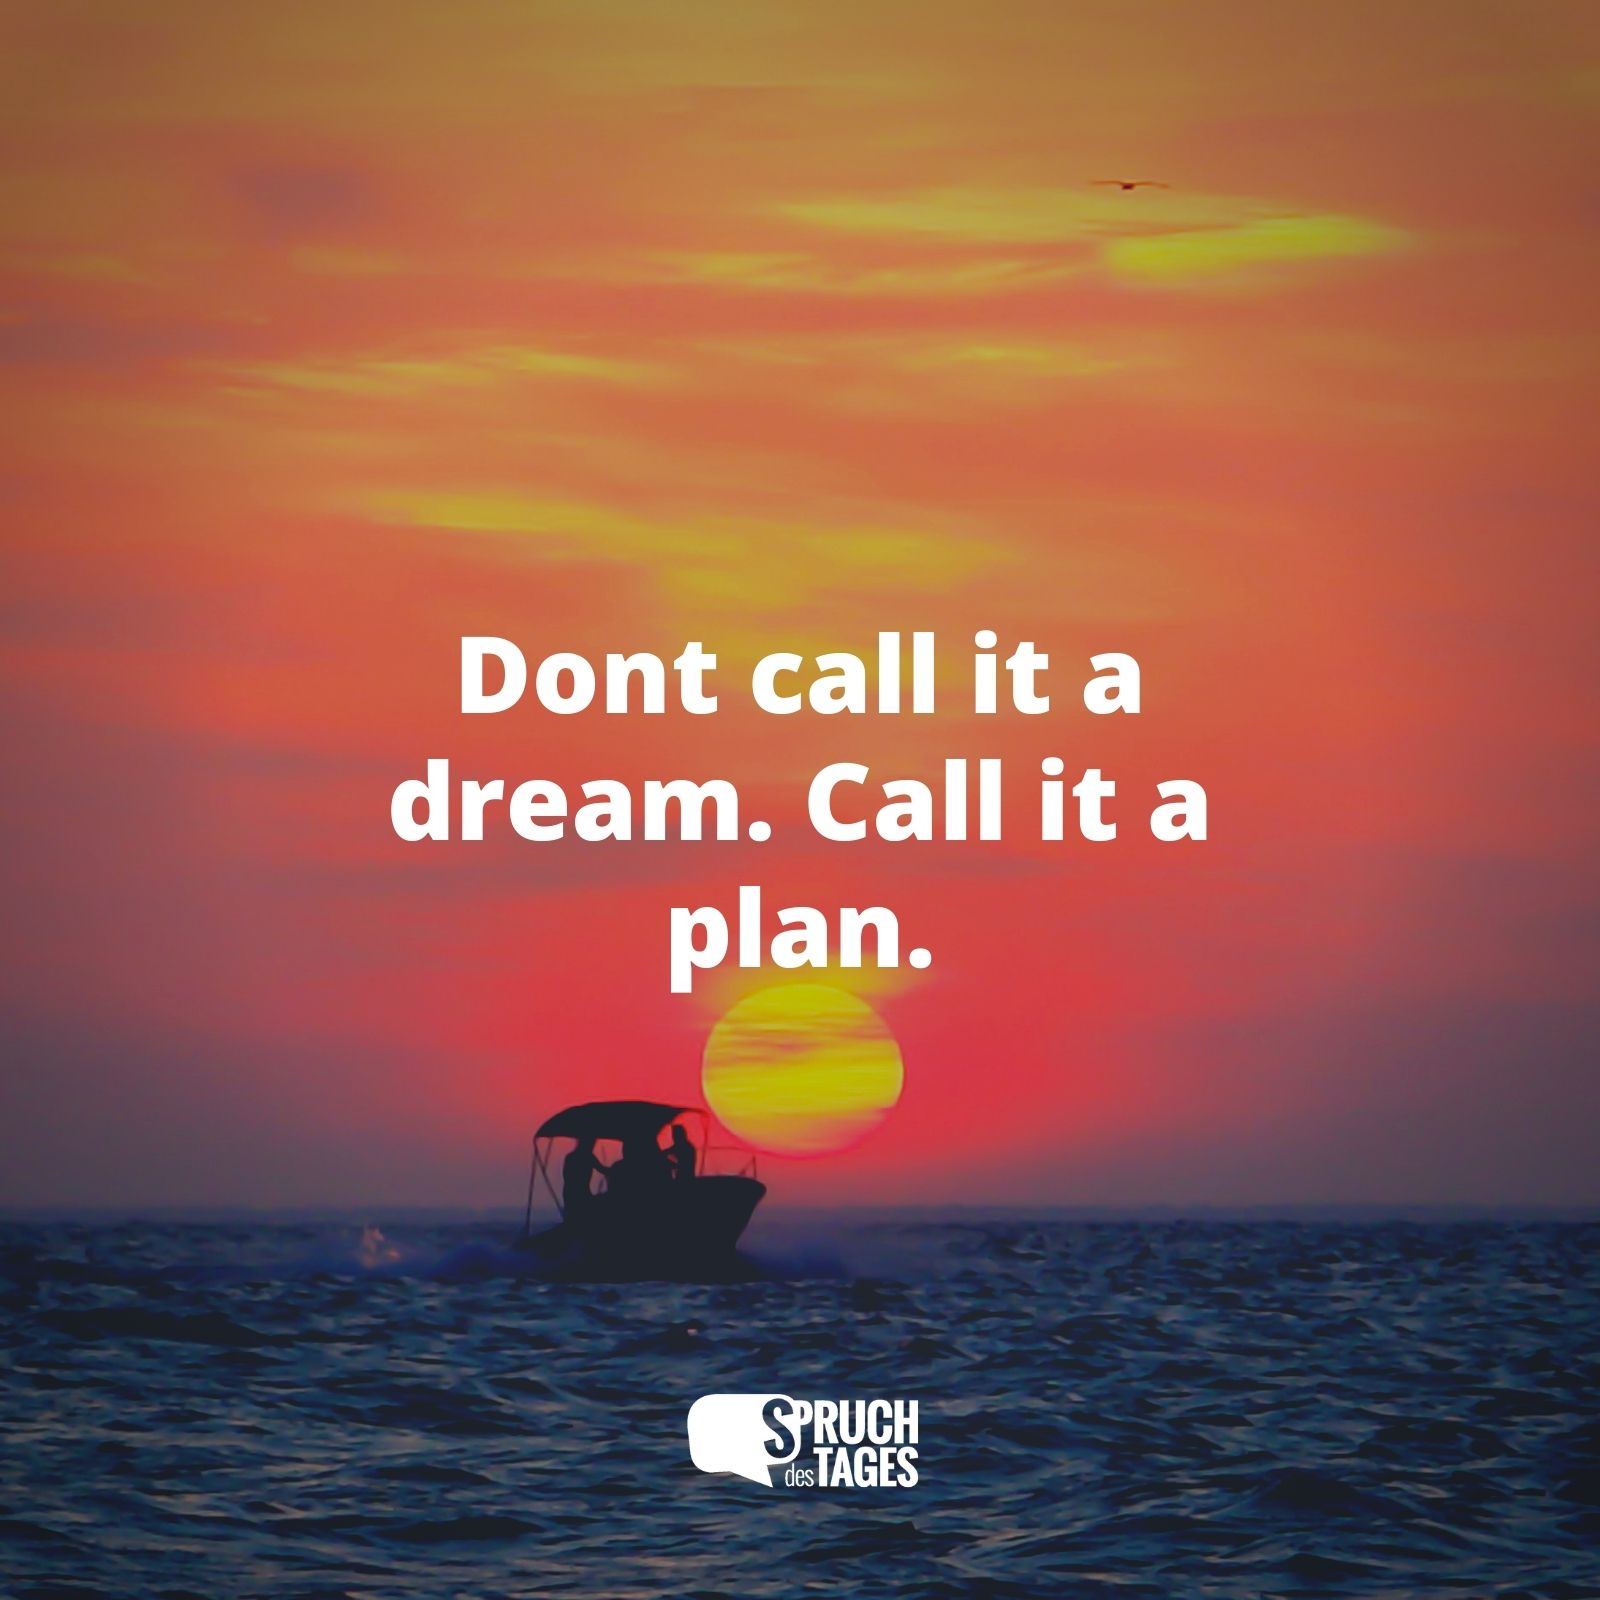 Dont call it a dream. Call it a plan.